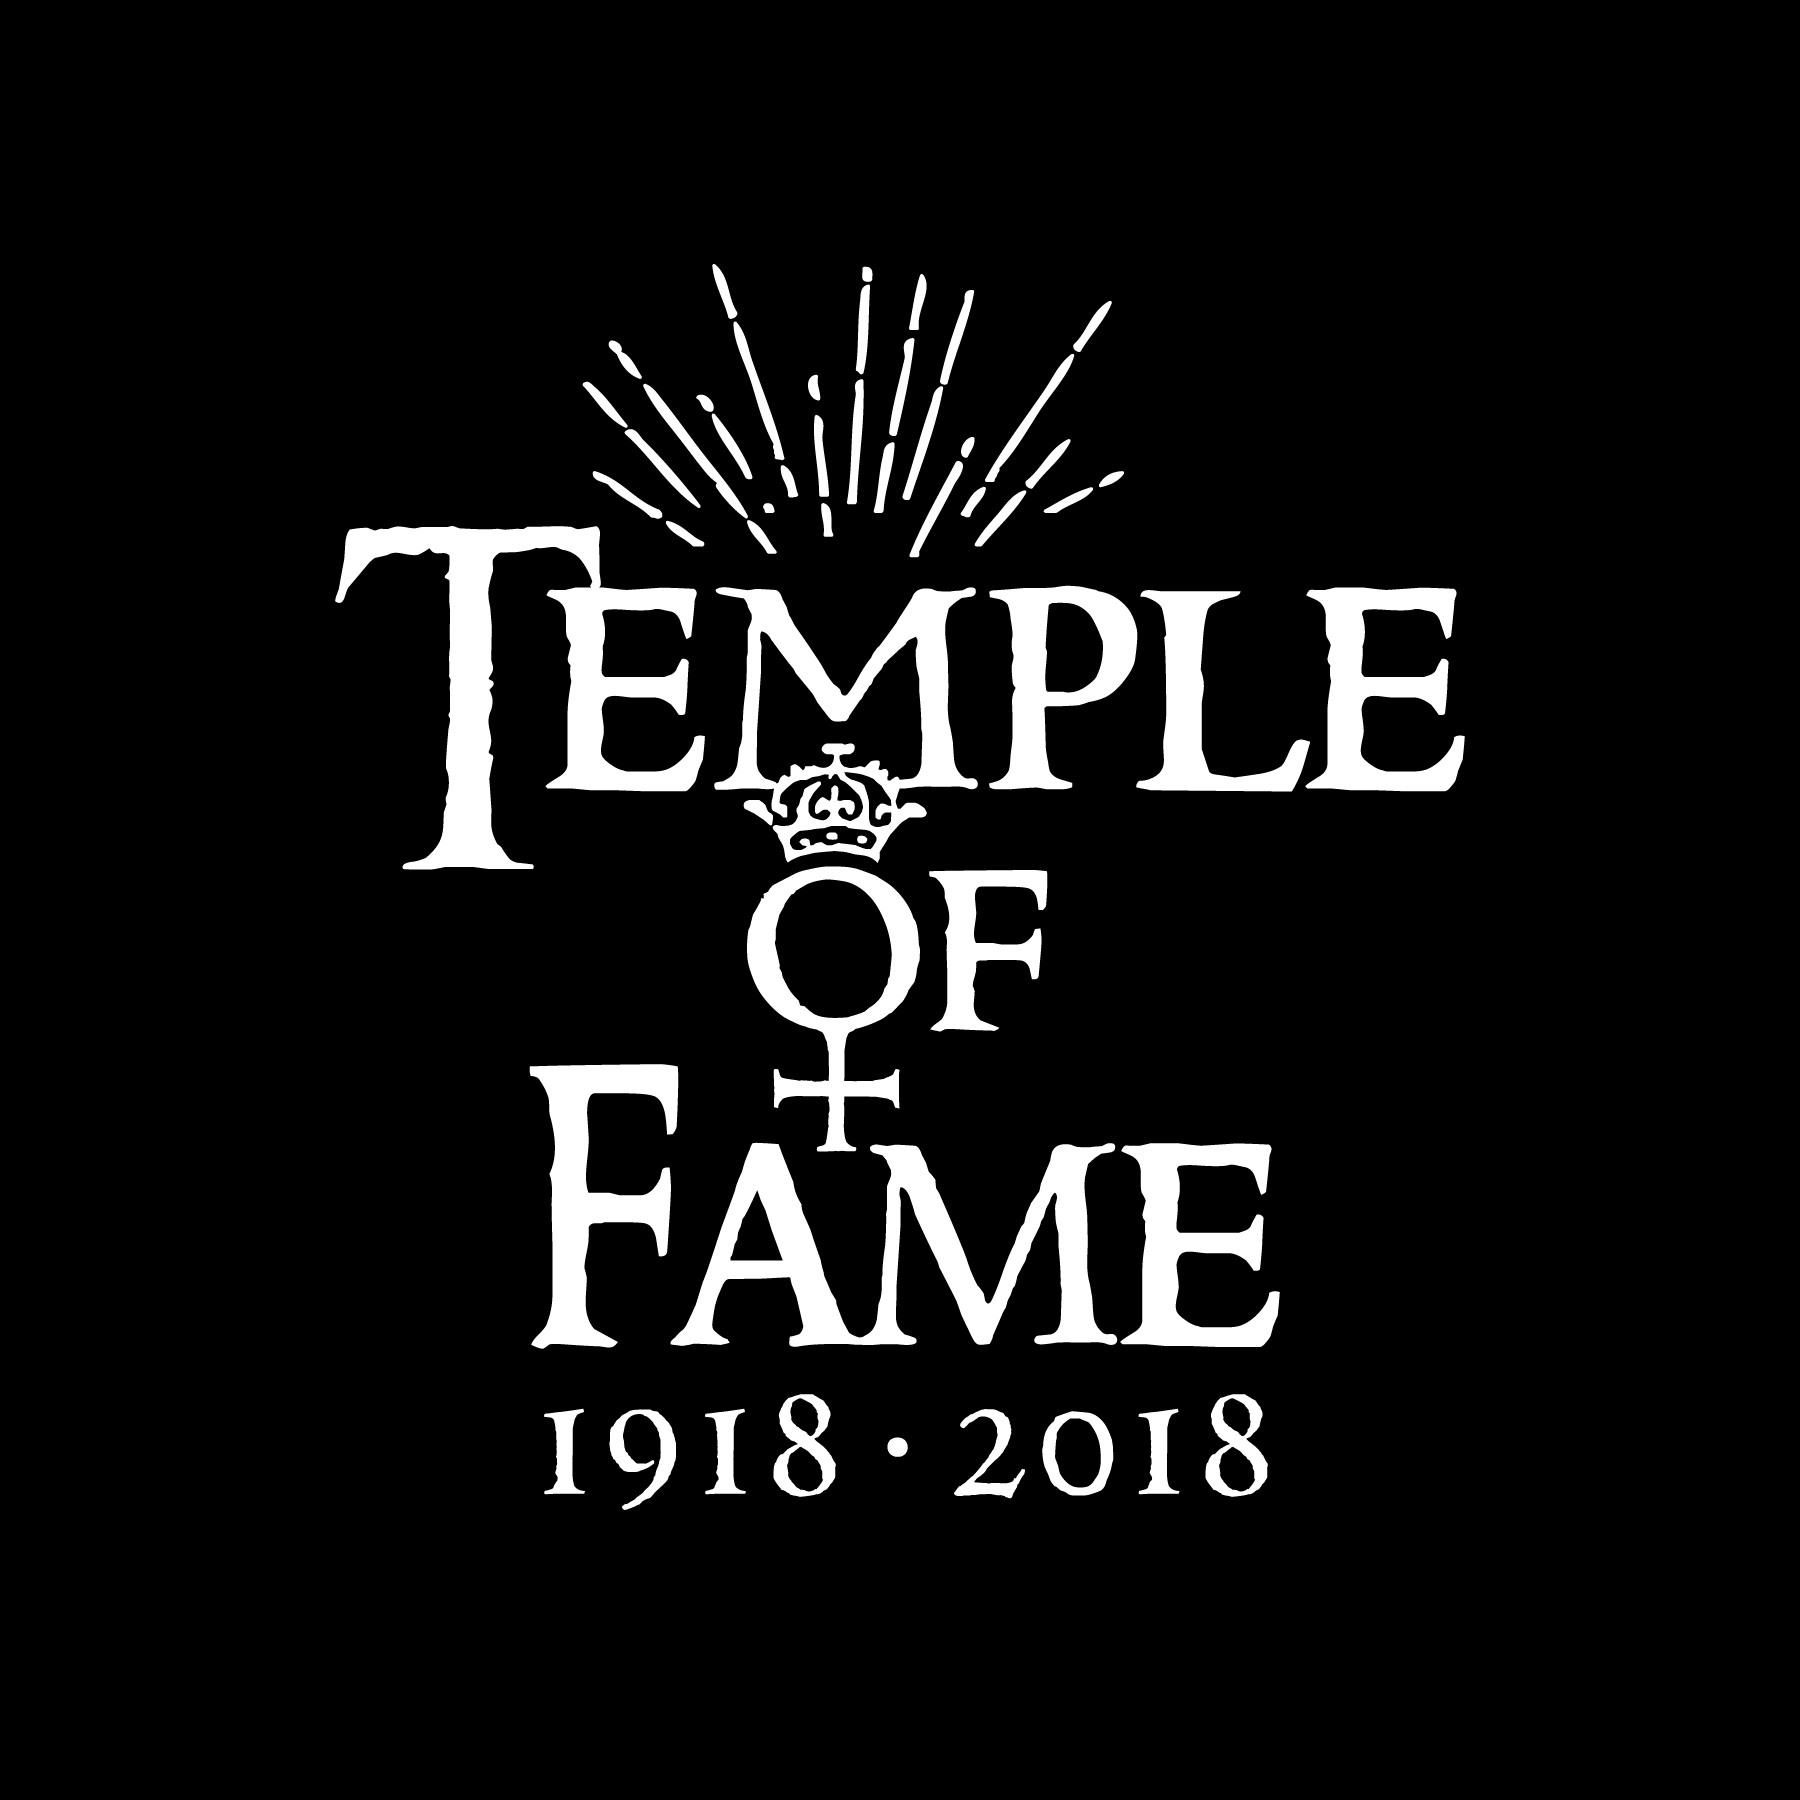 Black background logo with words Temple of Flame